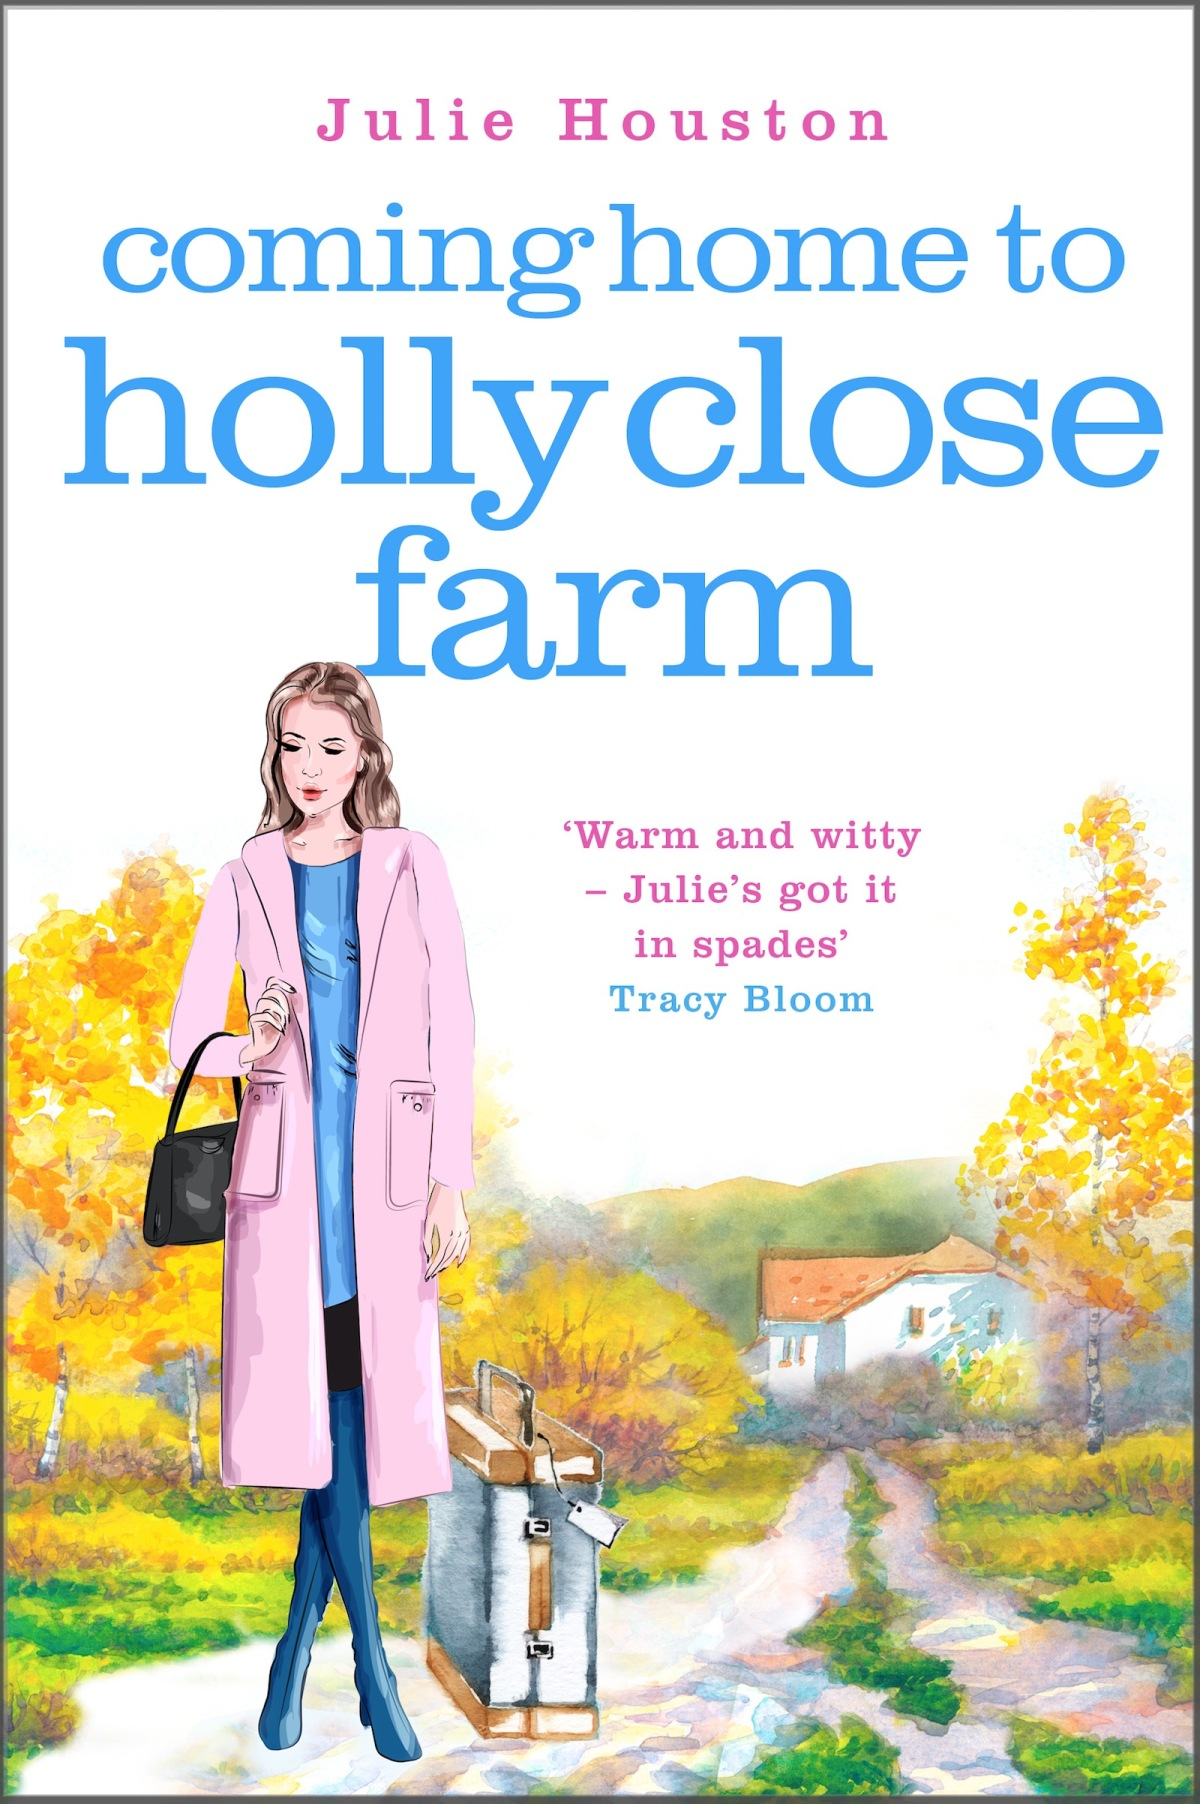 Blog Tour: Coming Home to Holly Close Farm by Julie Houston